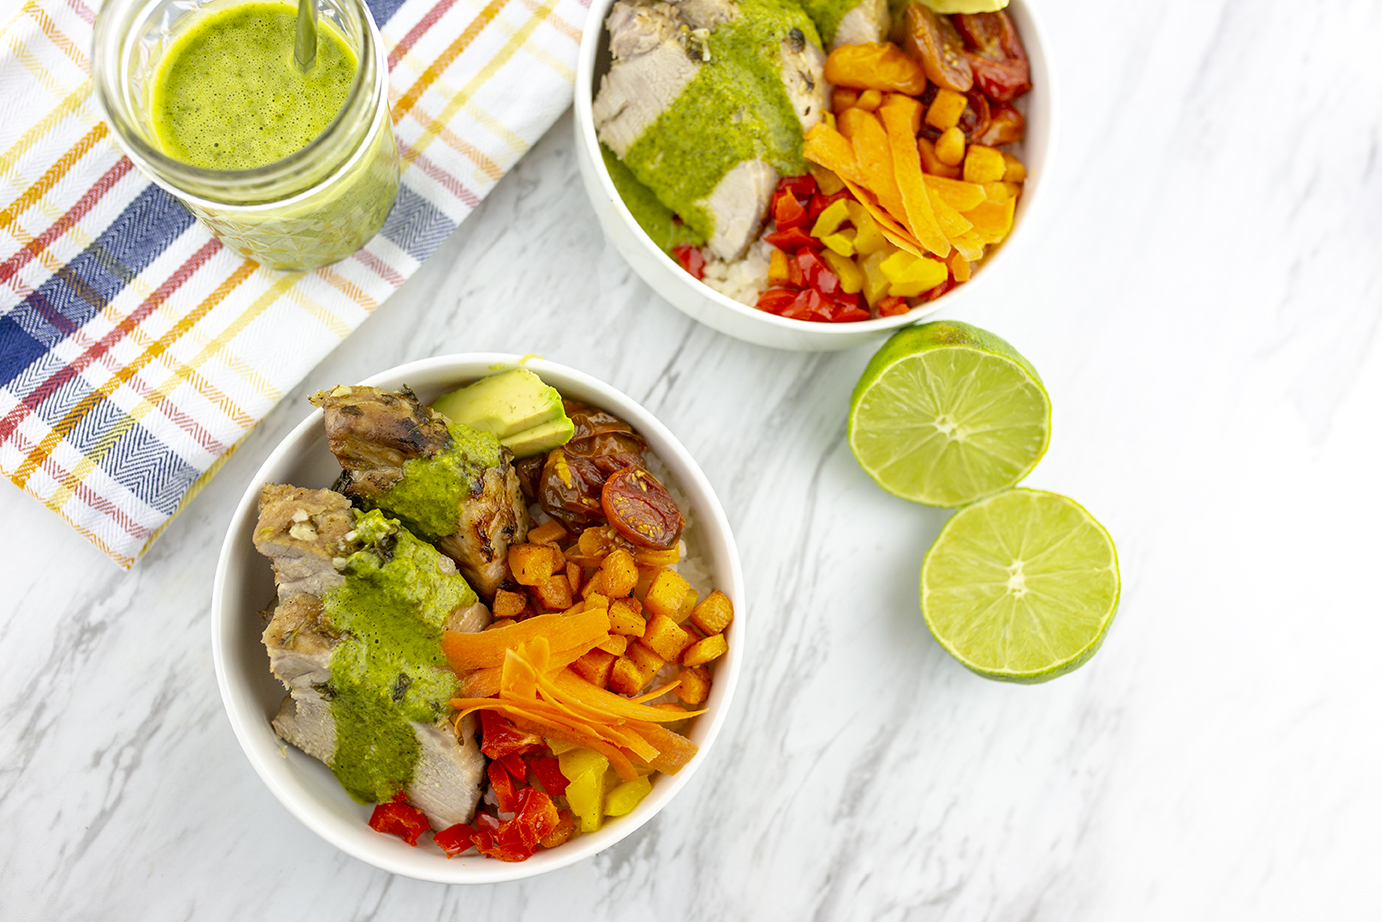 Two bowls of Cilantro lime pork and roasted vegetables